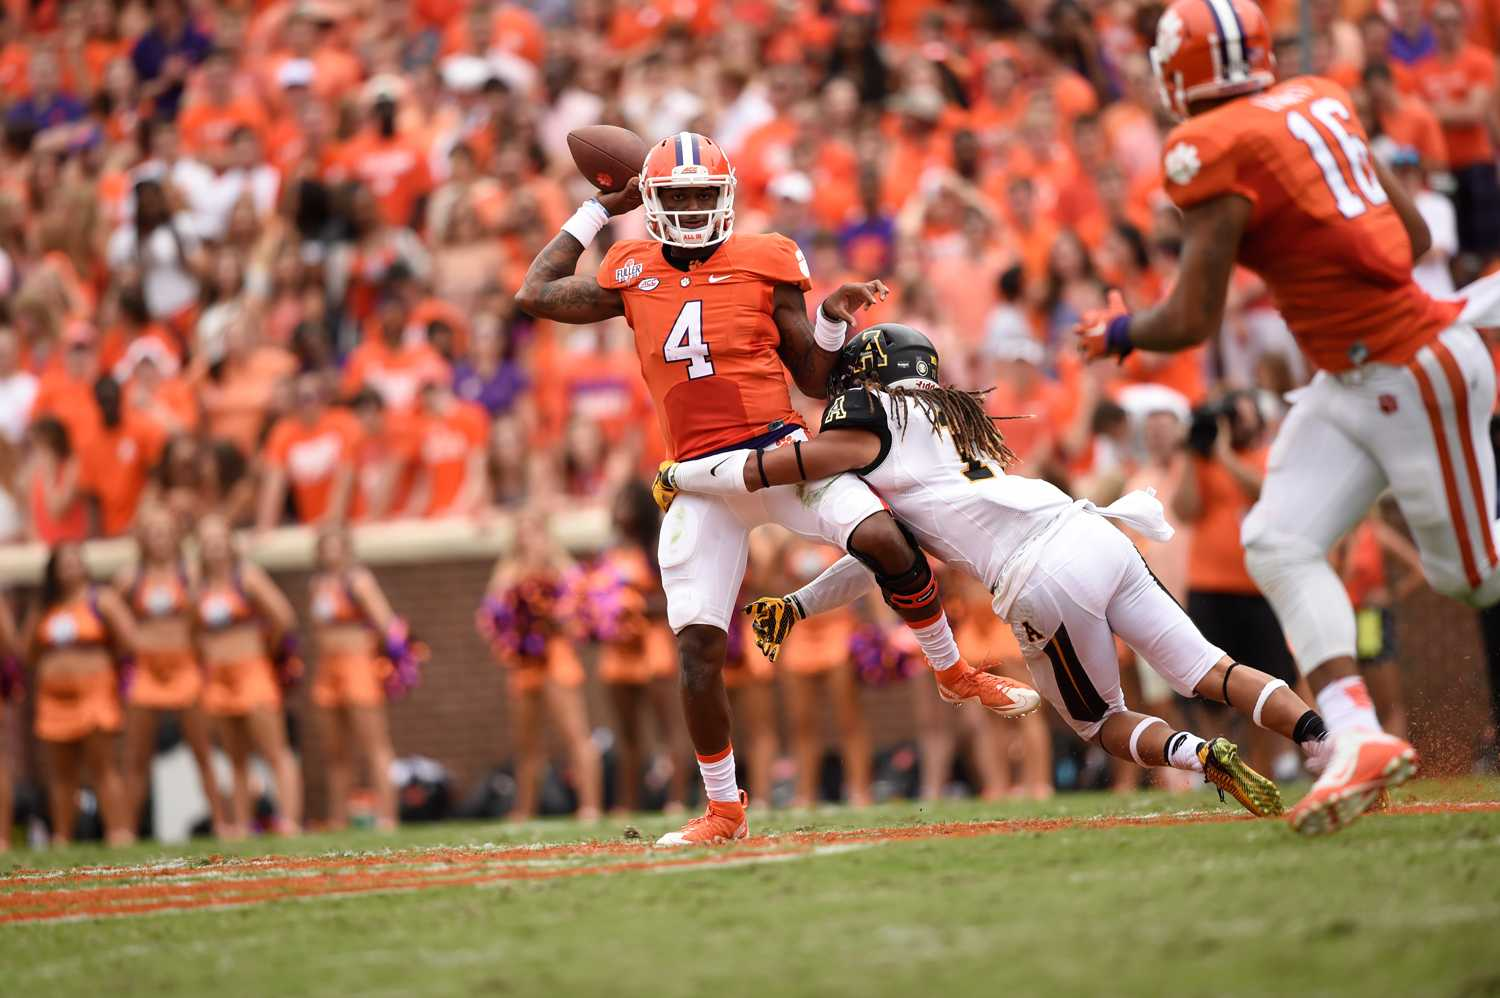 Sophomore linebacker Devan Stringer attempts to take down Clemson quarterback Deshaun Watson. The Tigers defeated the Mountaineers 41-10 Saturday.  Photo by Justin Perry  |  The Appalachian